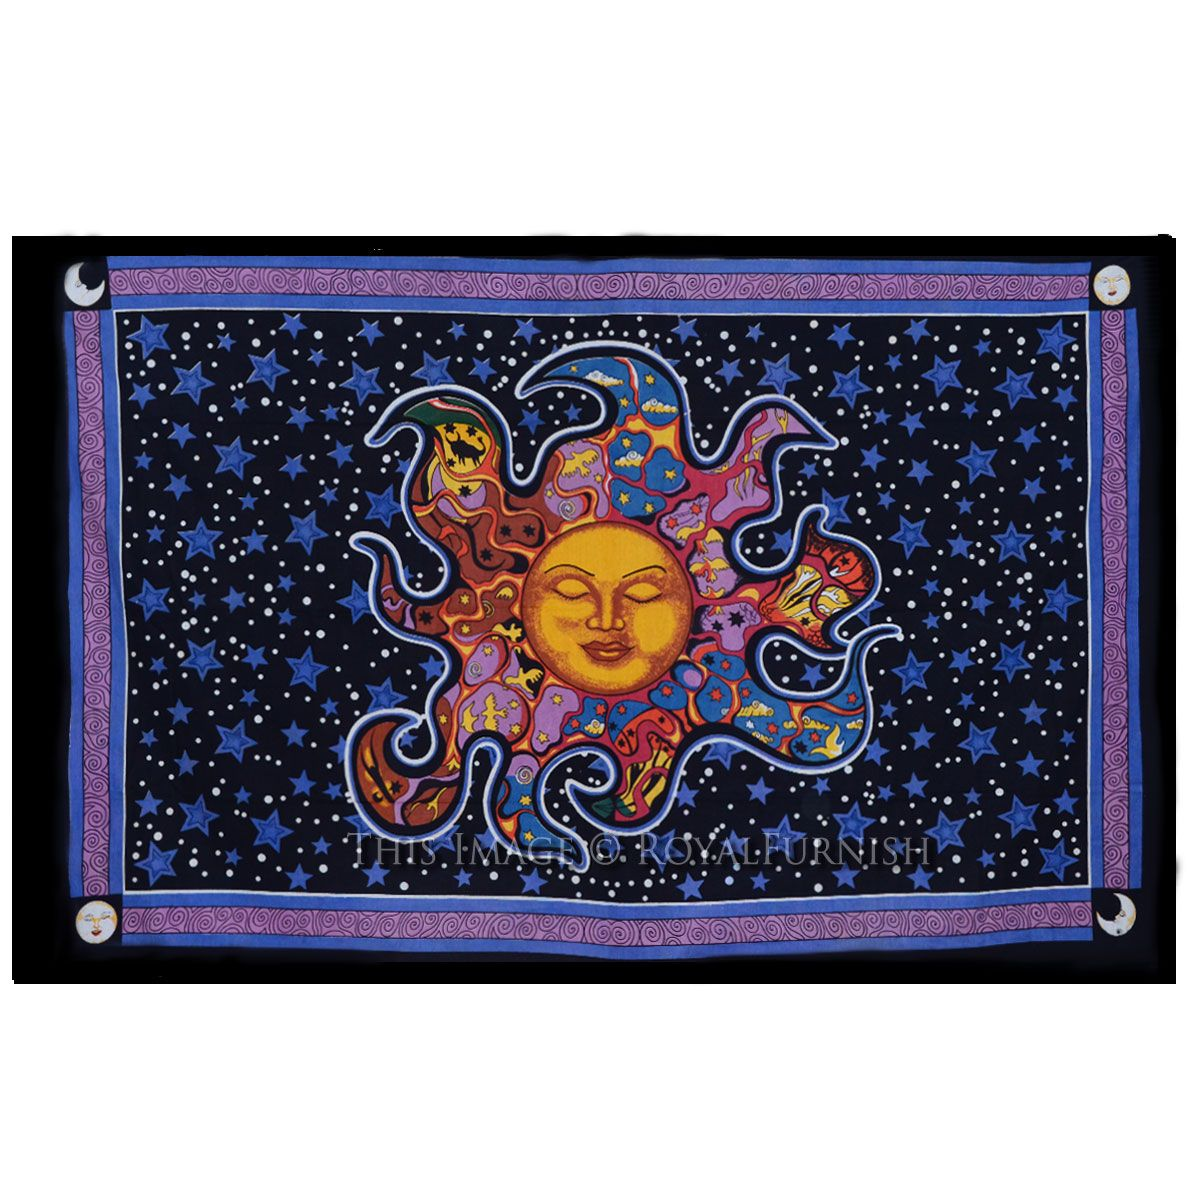 Decorative Wall Art Psychedelic Celestial Tapestry Sleeping Sun Wall Hanging